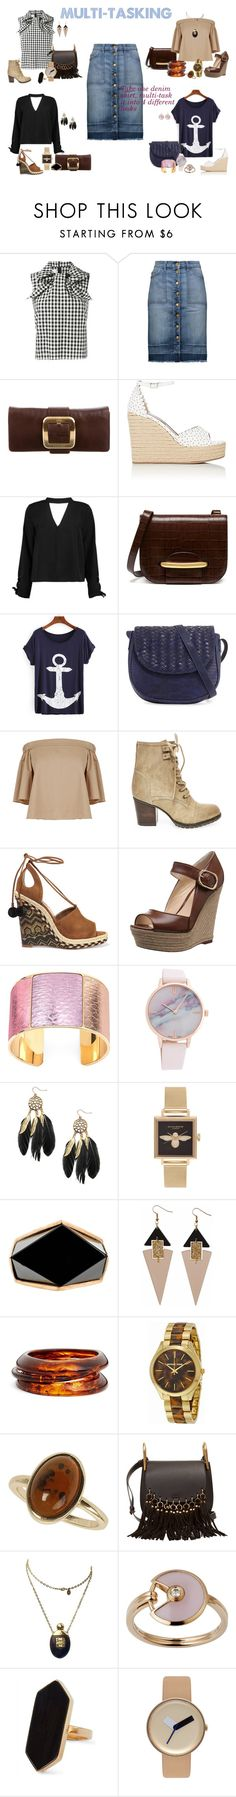 """Multi-Tasking"" by glizzard on Polyvore featuring Marques'Almeida, Current/Elliott, Michael Kors, Tabitha Simmons, Boohoo, Mulberry, Neiman Marcus, TIBI, Steve Madden and Aquazzura"